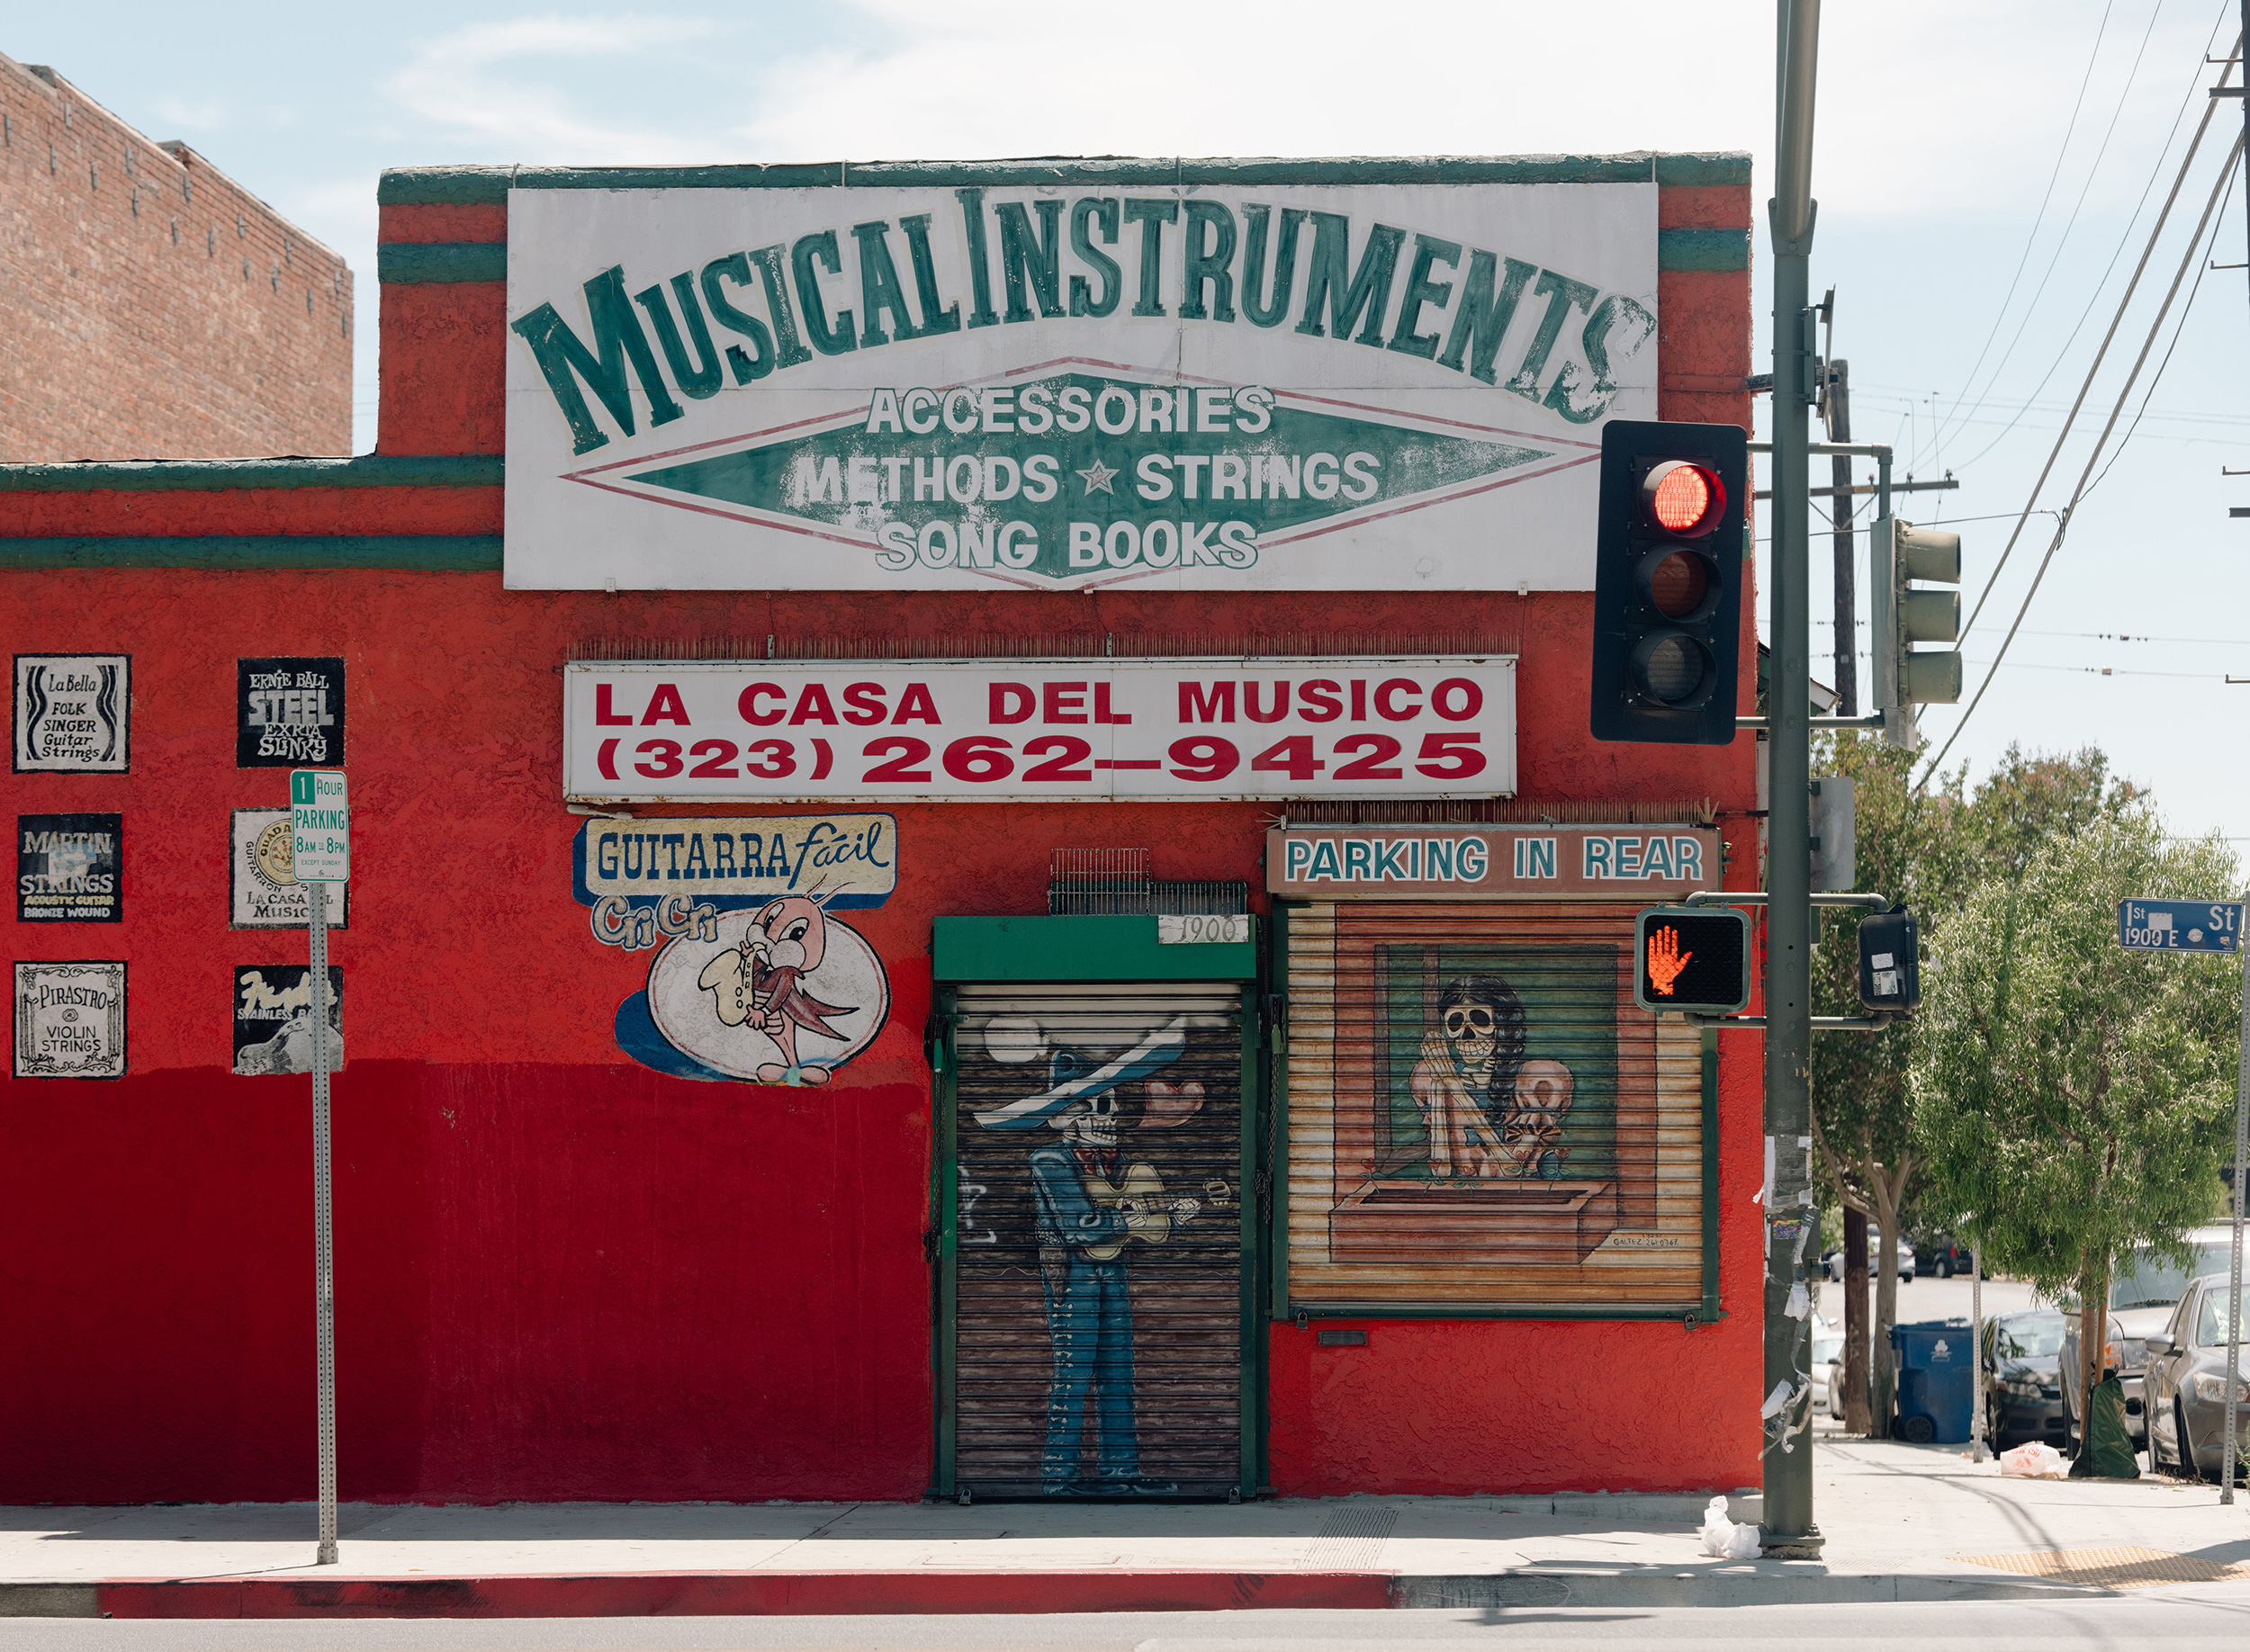 A musical instrument store in Boyle Heights.